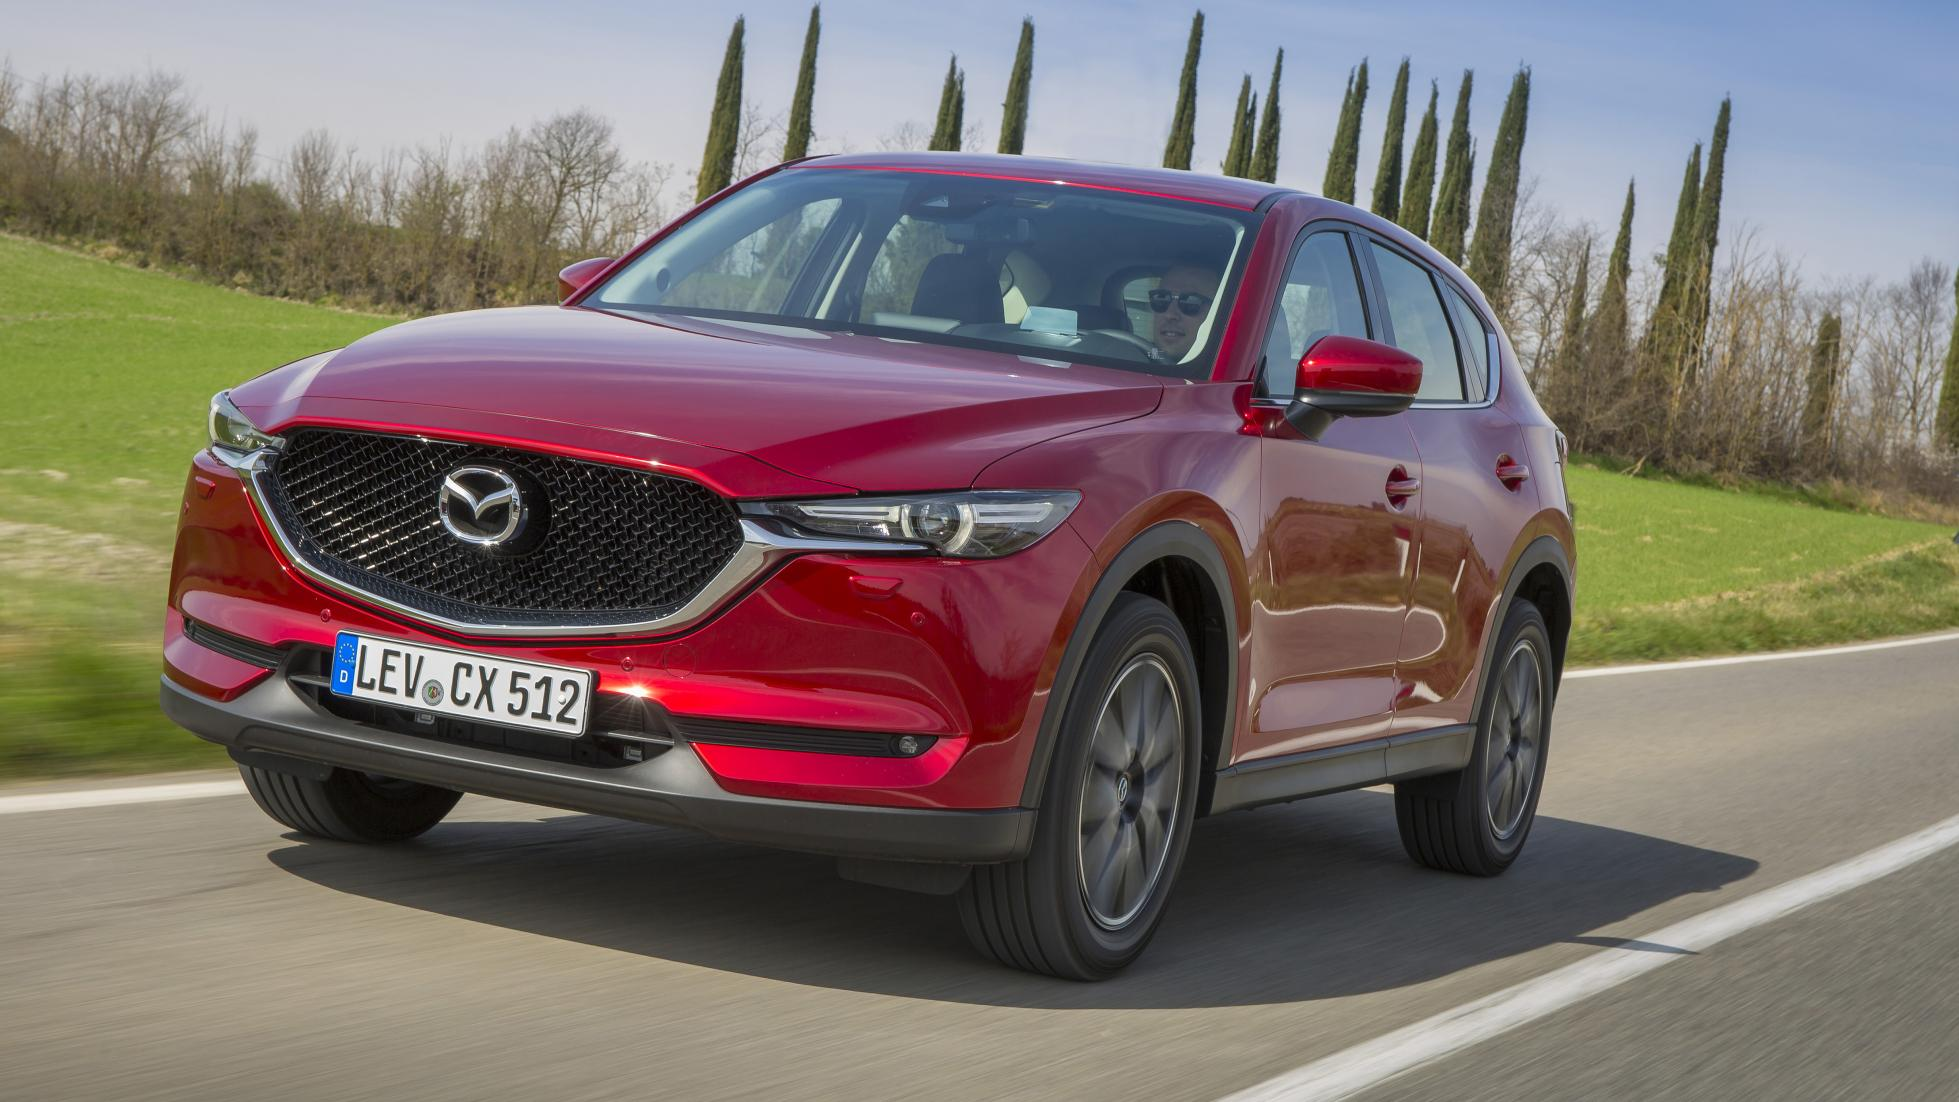 Rivales del Mitsubishi Eclipse Cross: Mazda CX-5